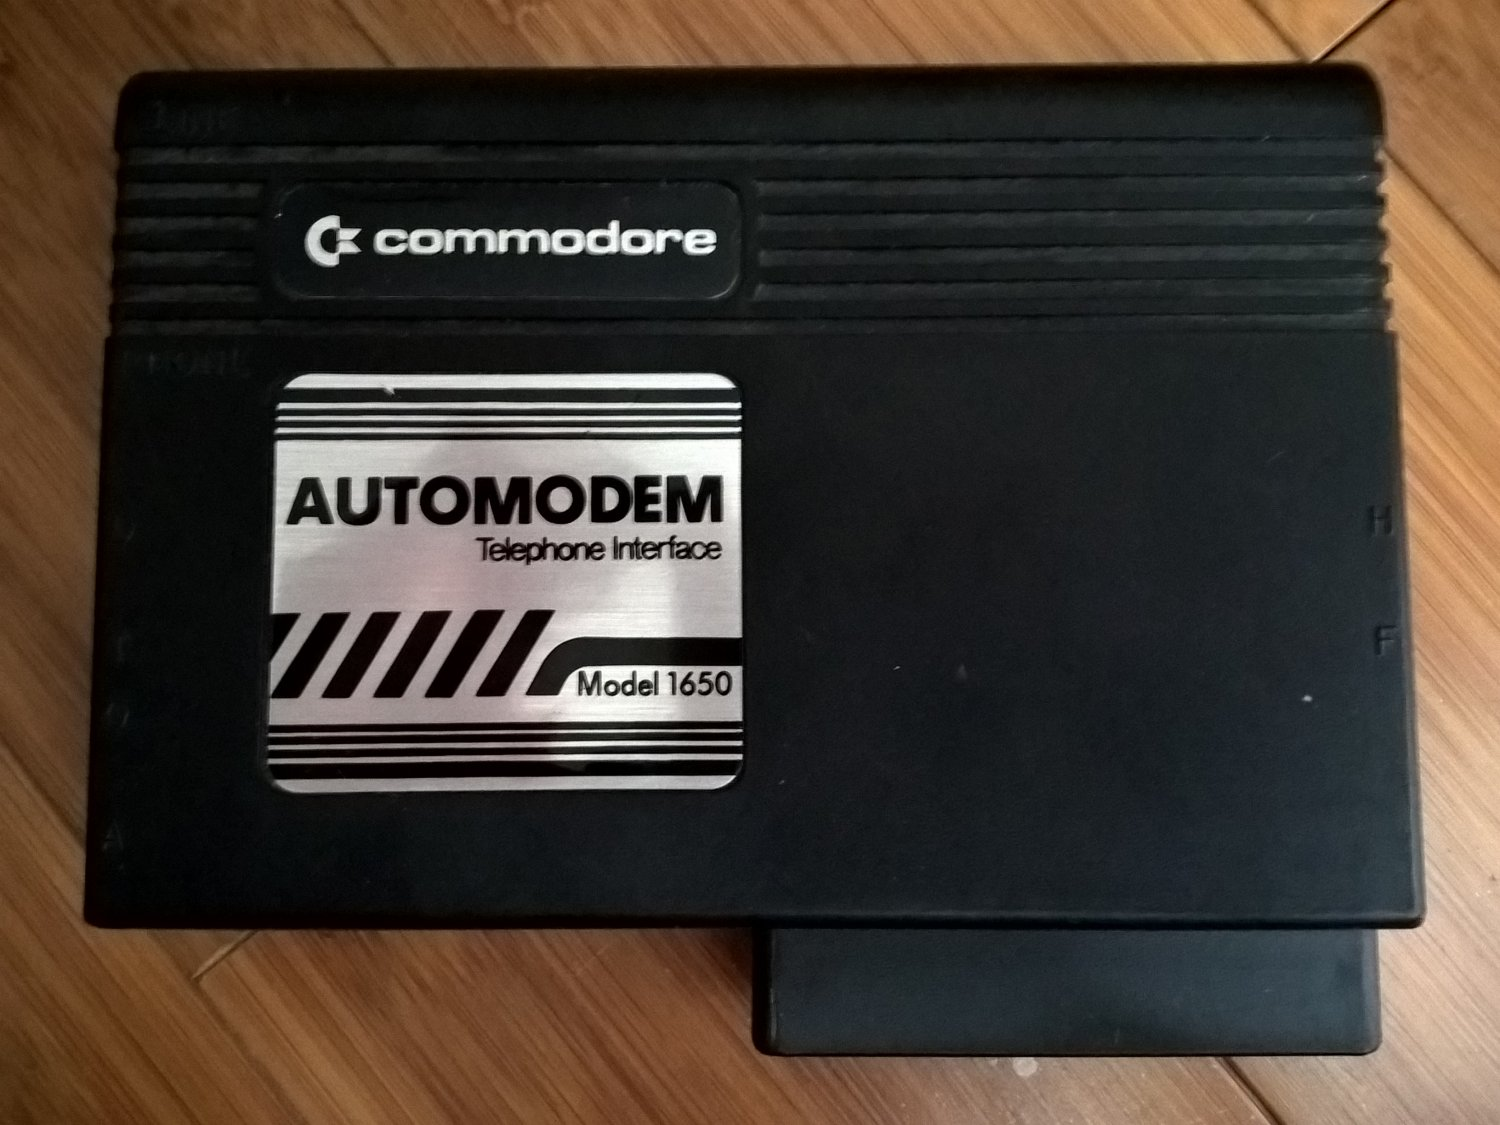 Commodore 1650 AutoModem For 64/128, 300 Baud Modem